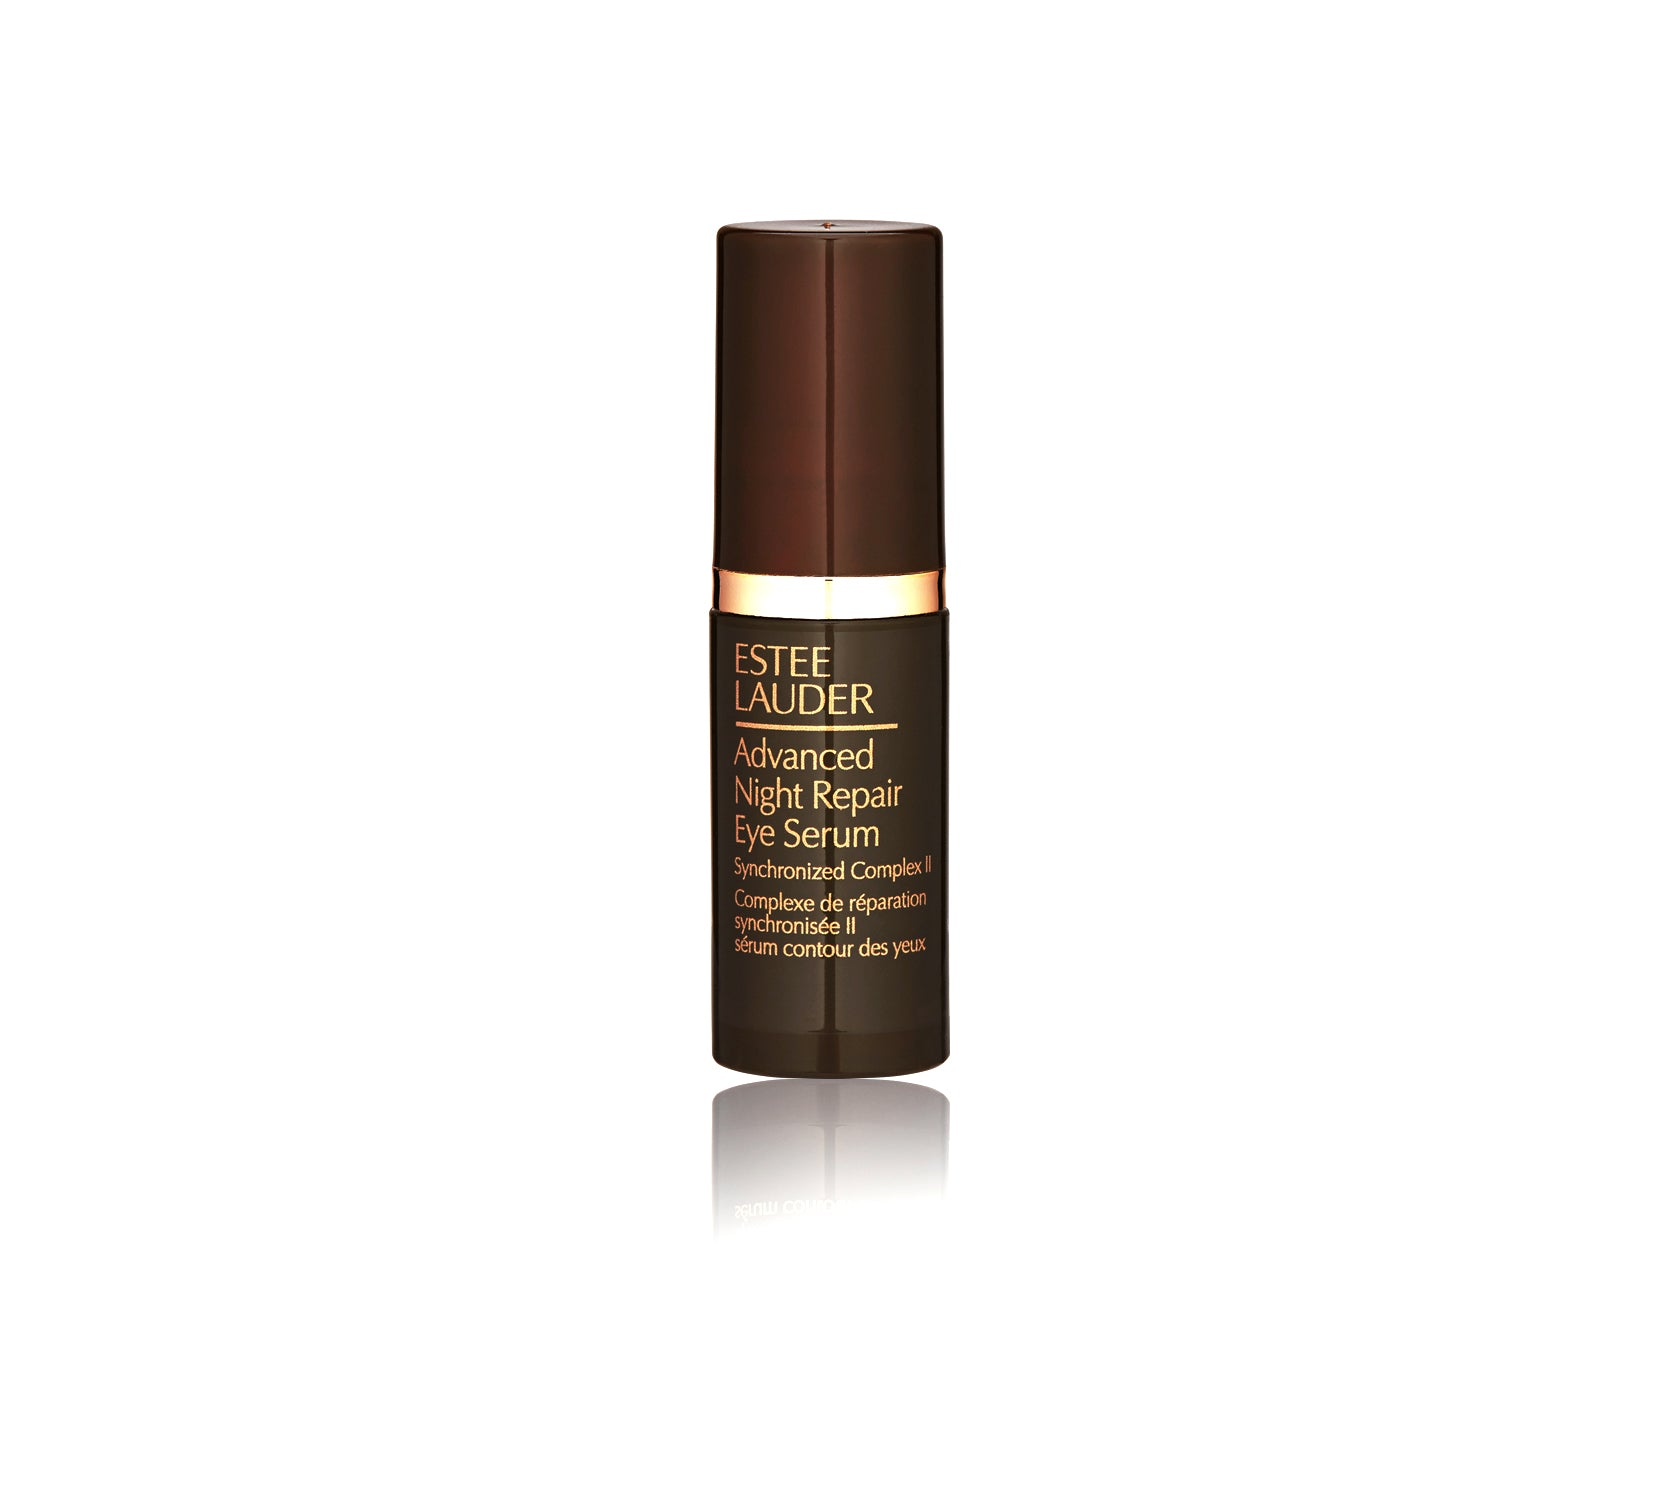 [Mini] Advanced Night Repair Eye Serum Synchronized Complex II